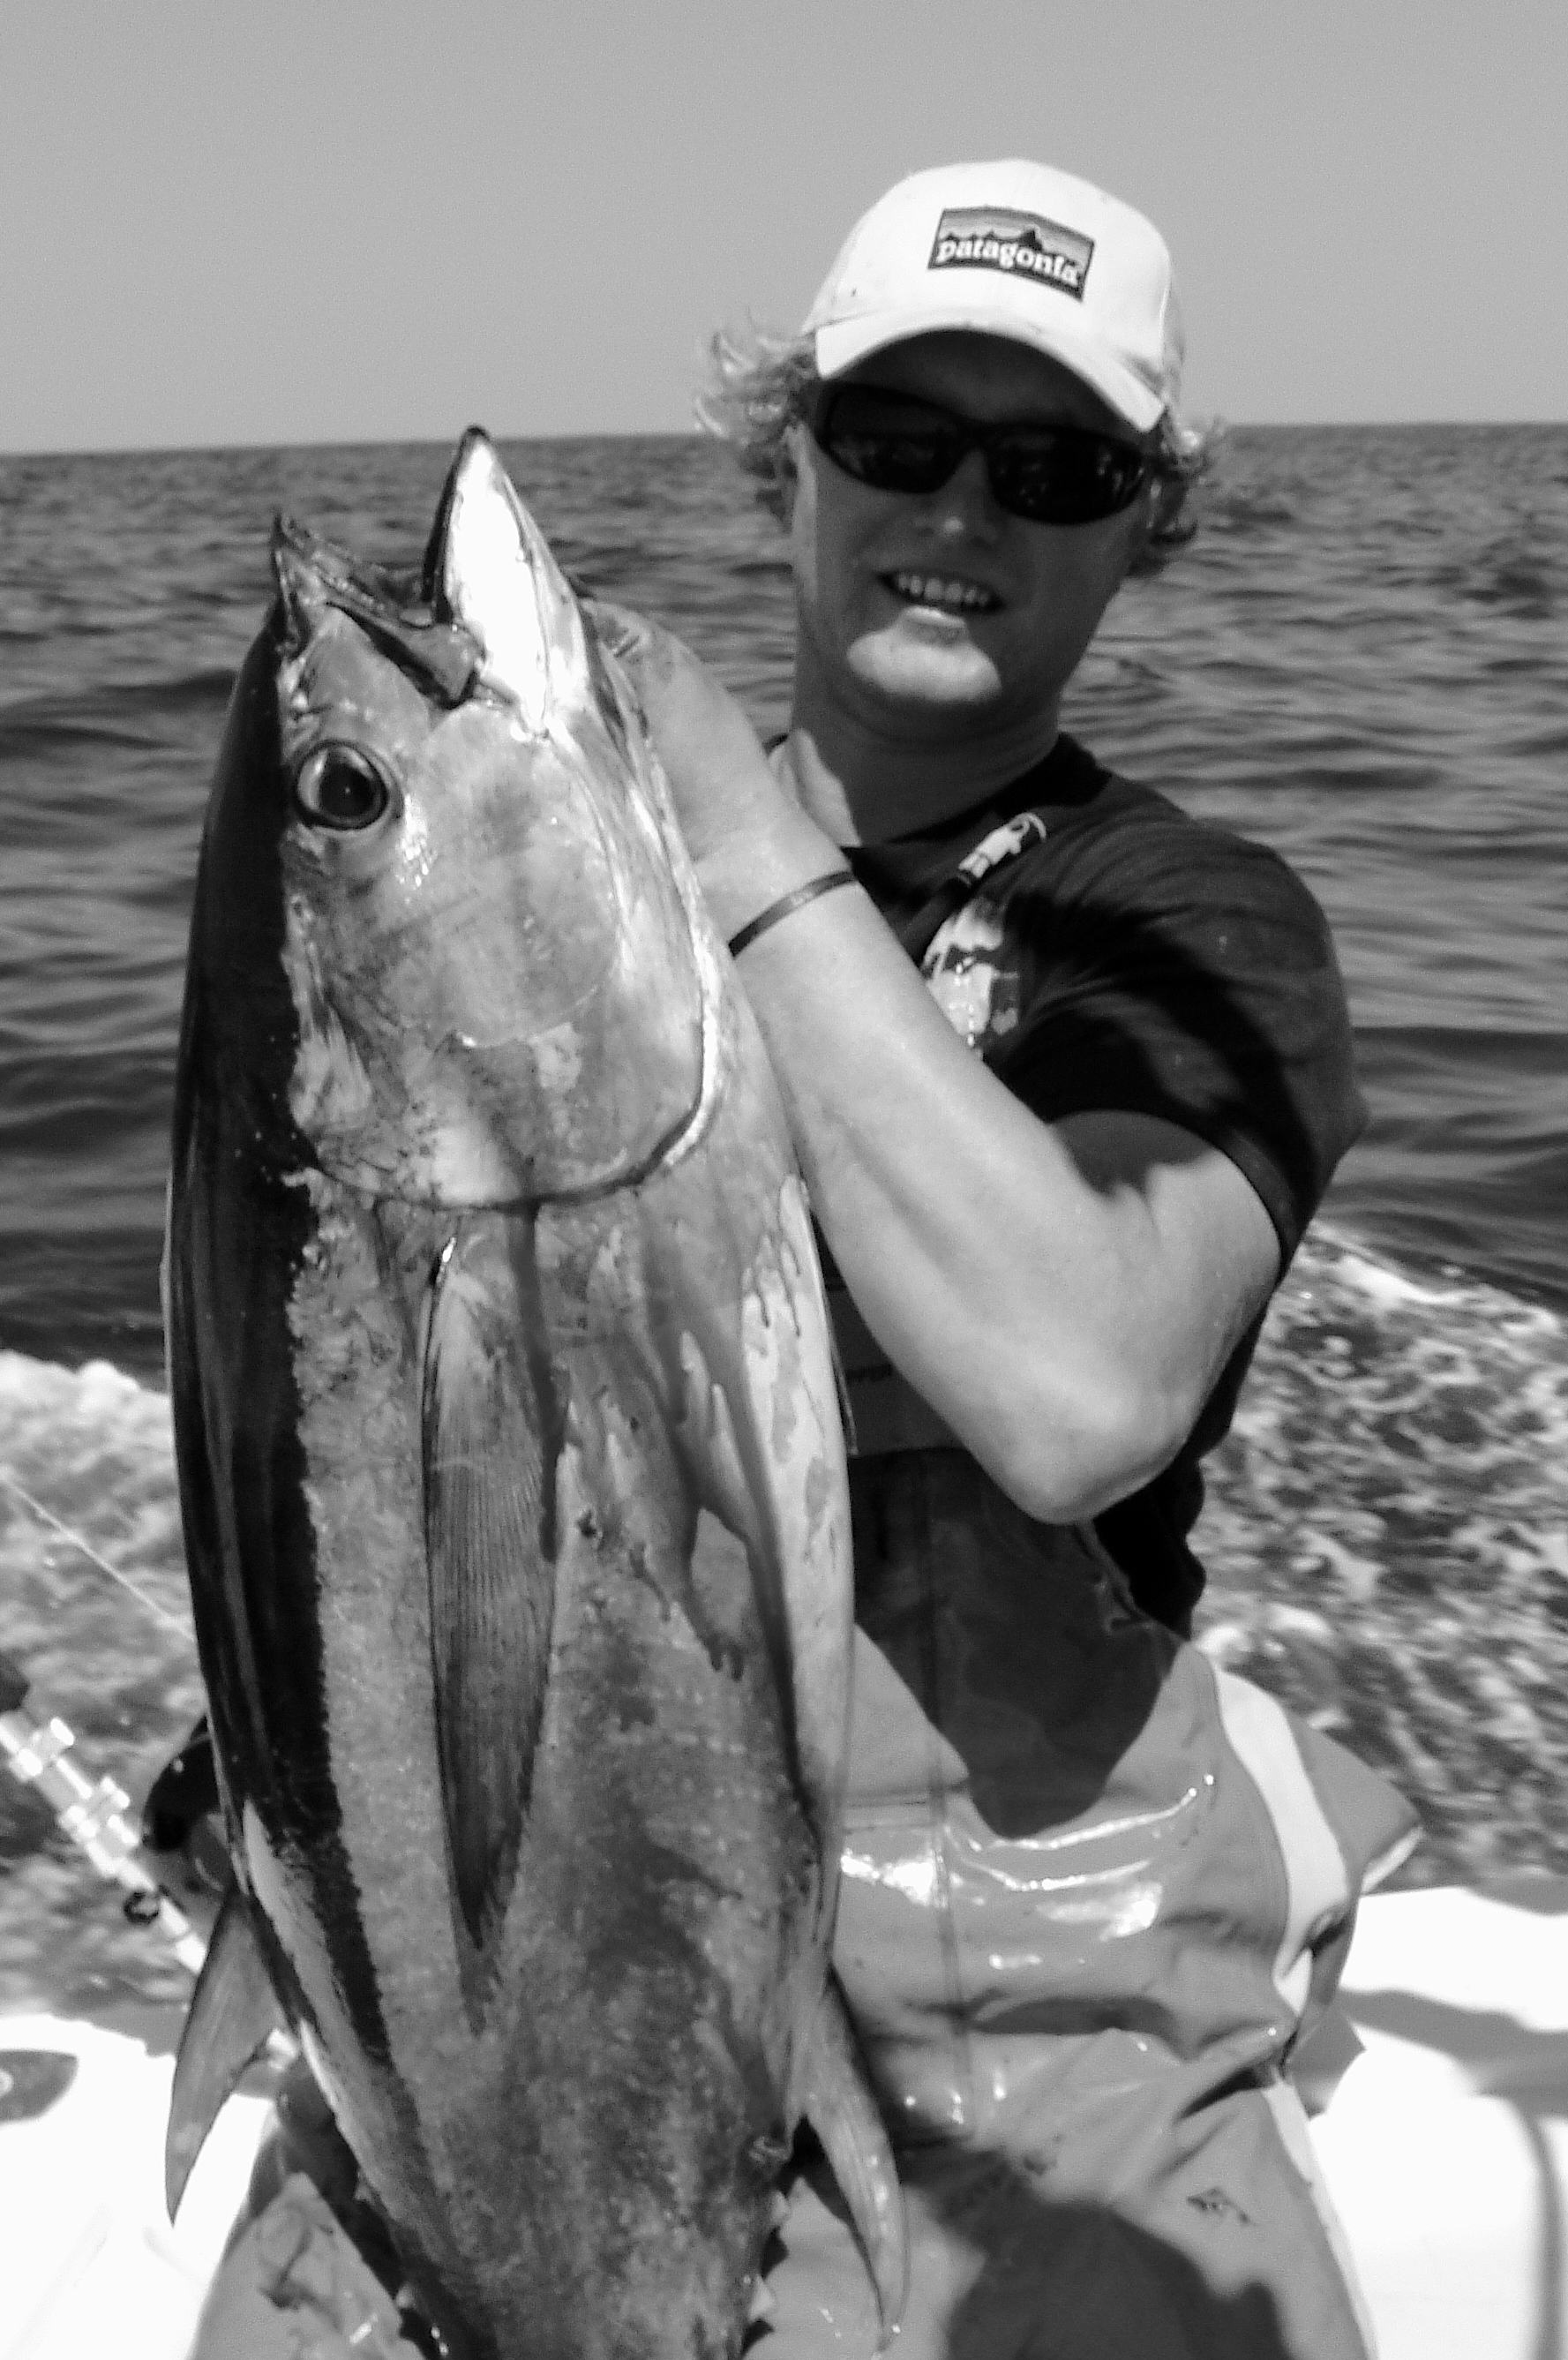 Cape Star Charters - Tuna